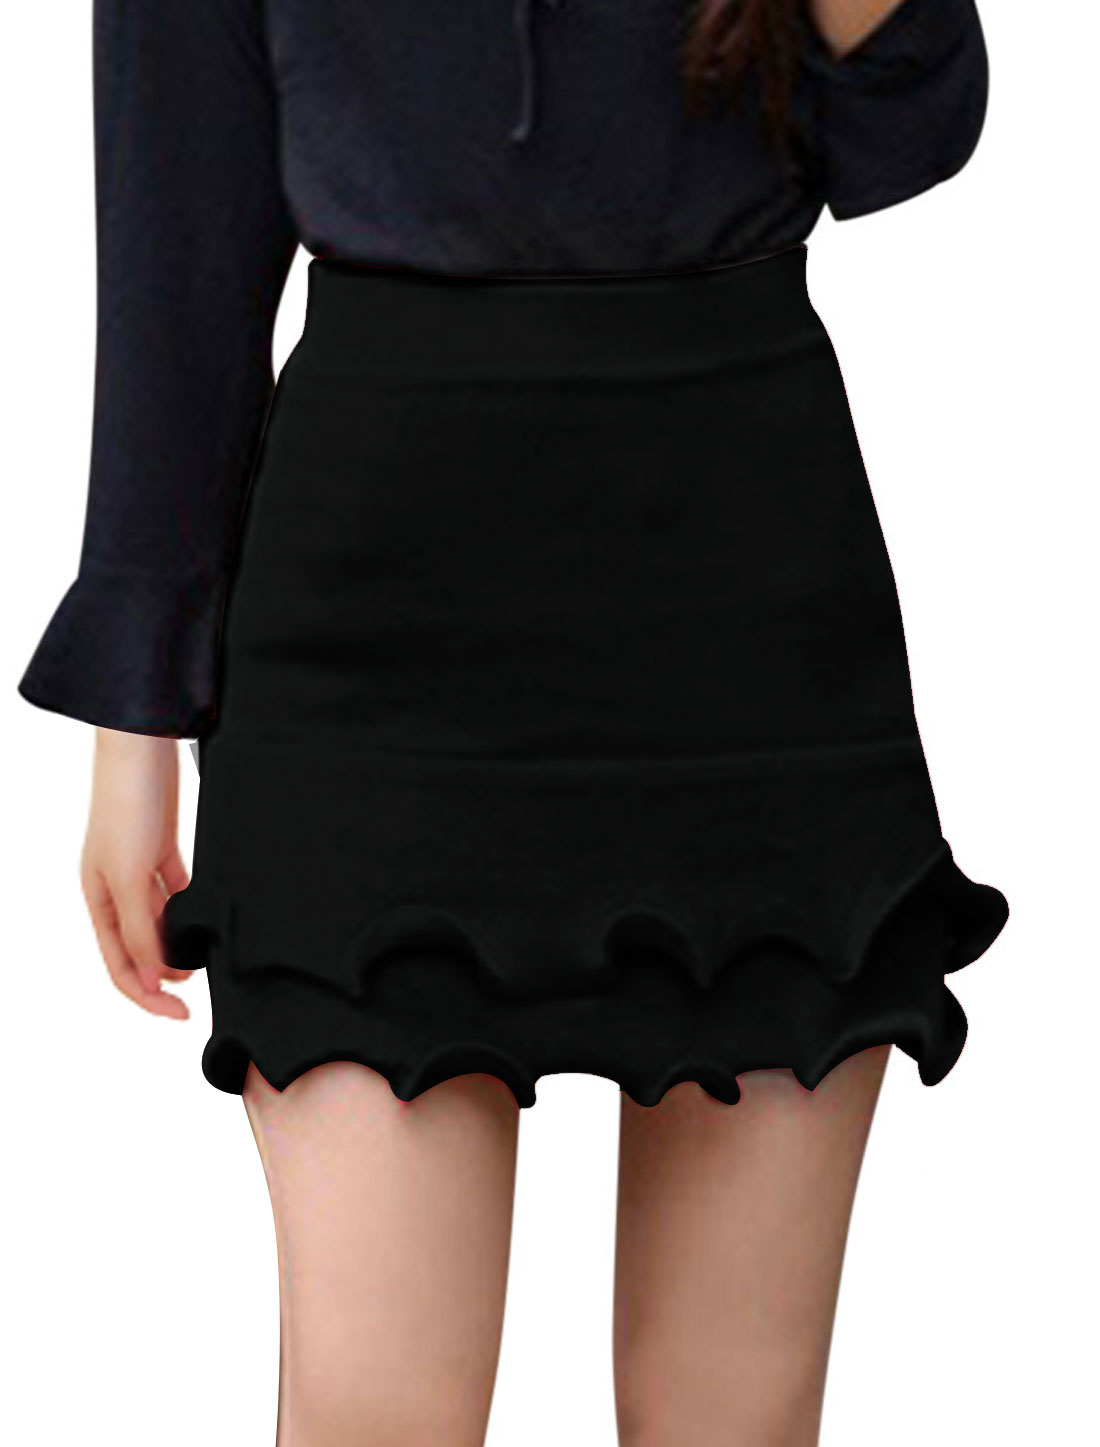 Ladies Black Mid Rise Elastic Waist Ruffle Trim Leisure Knitted Skirt XS